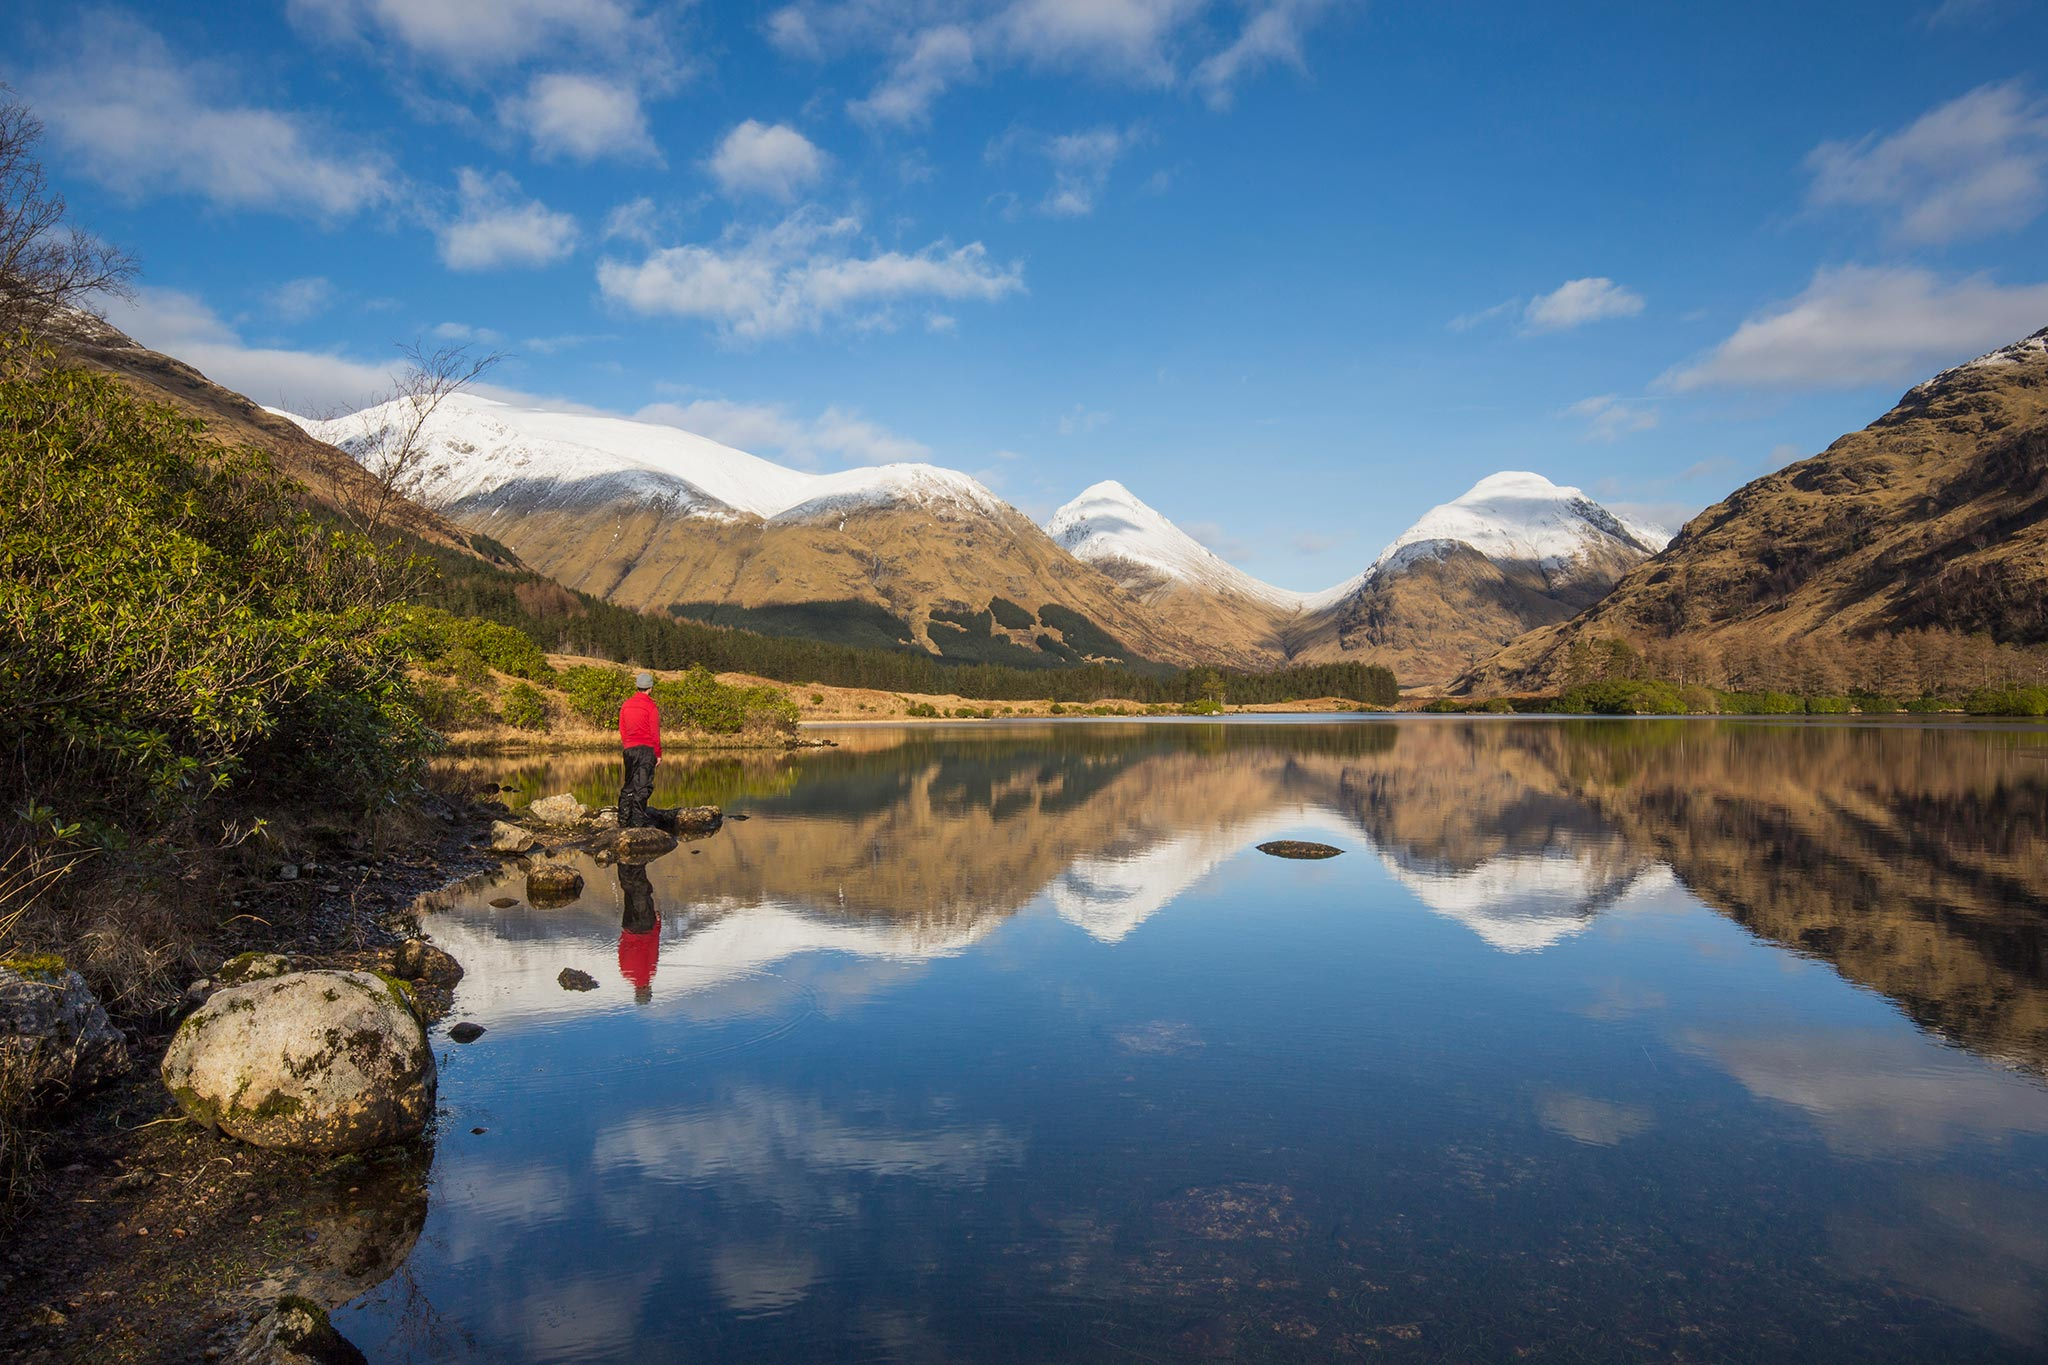 Lochan Urr in Glen Etive with Buachaille Etive Beag and Buachaille Etive Mor in the background